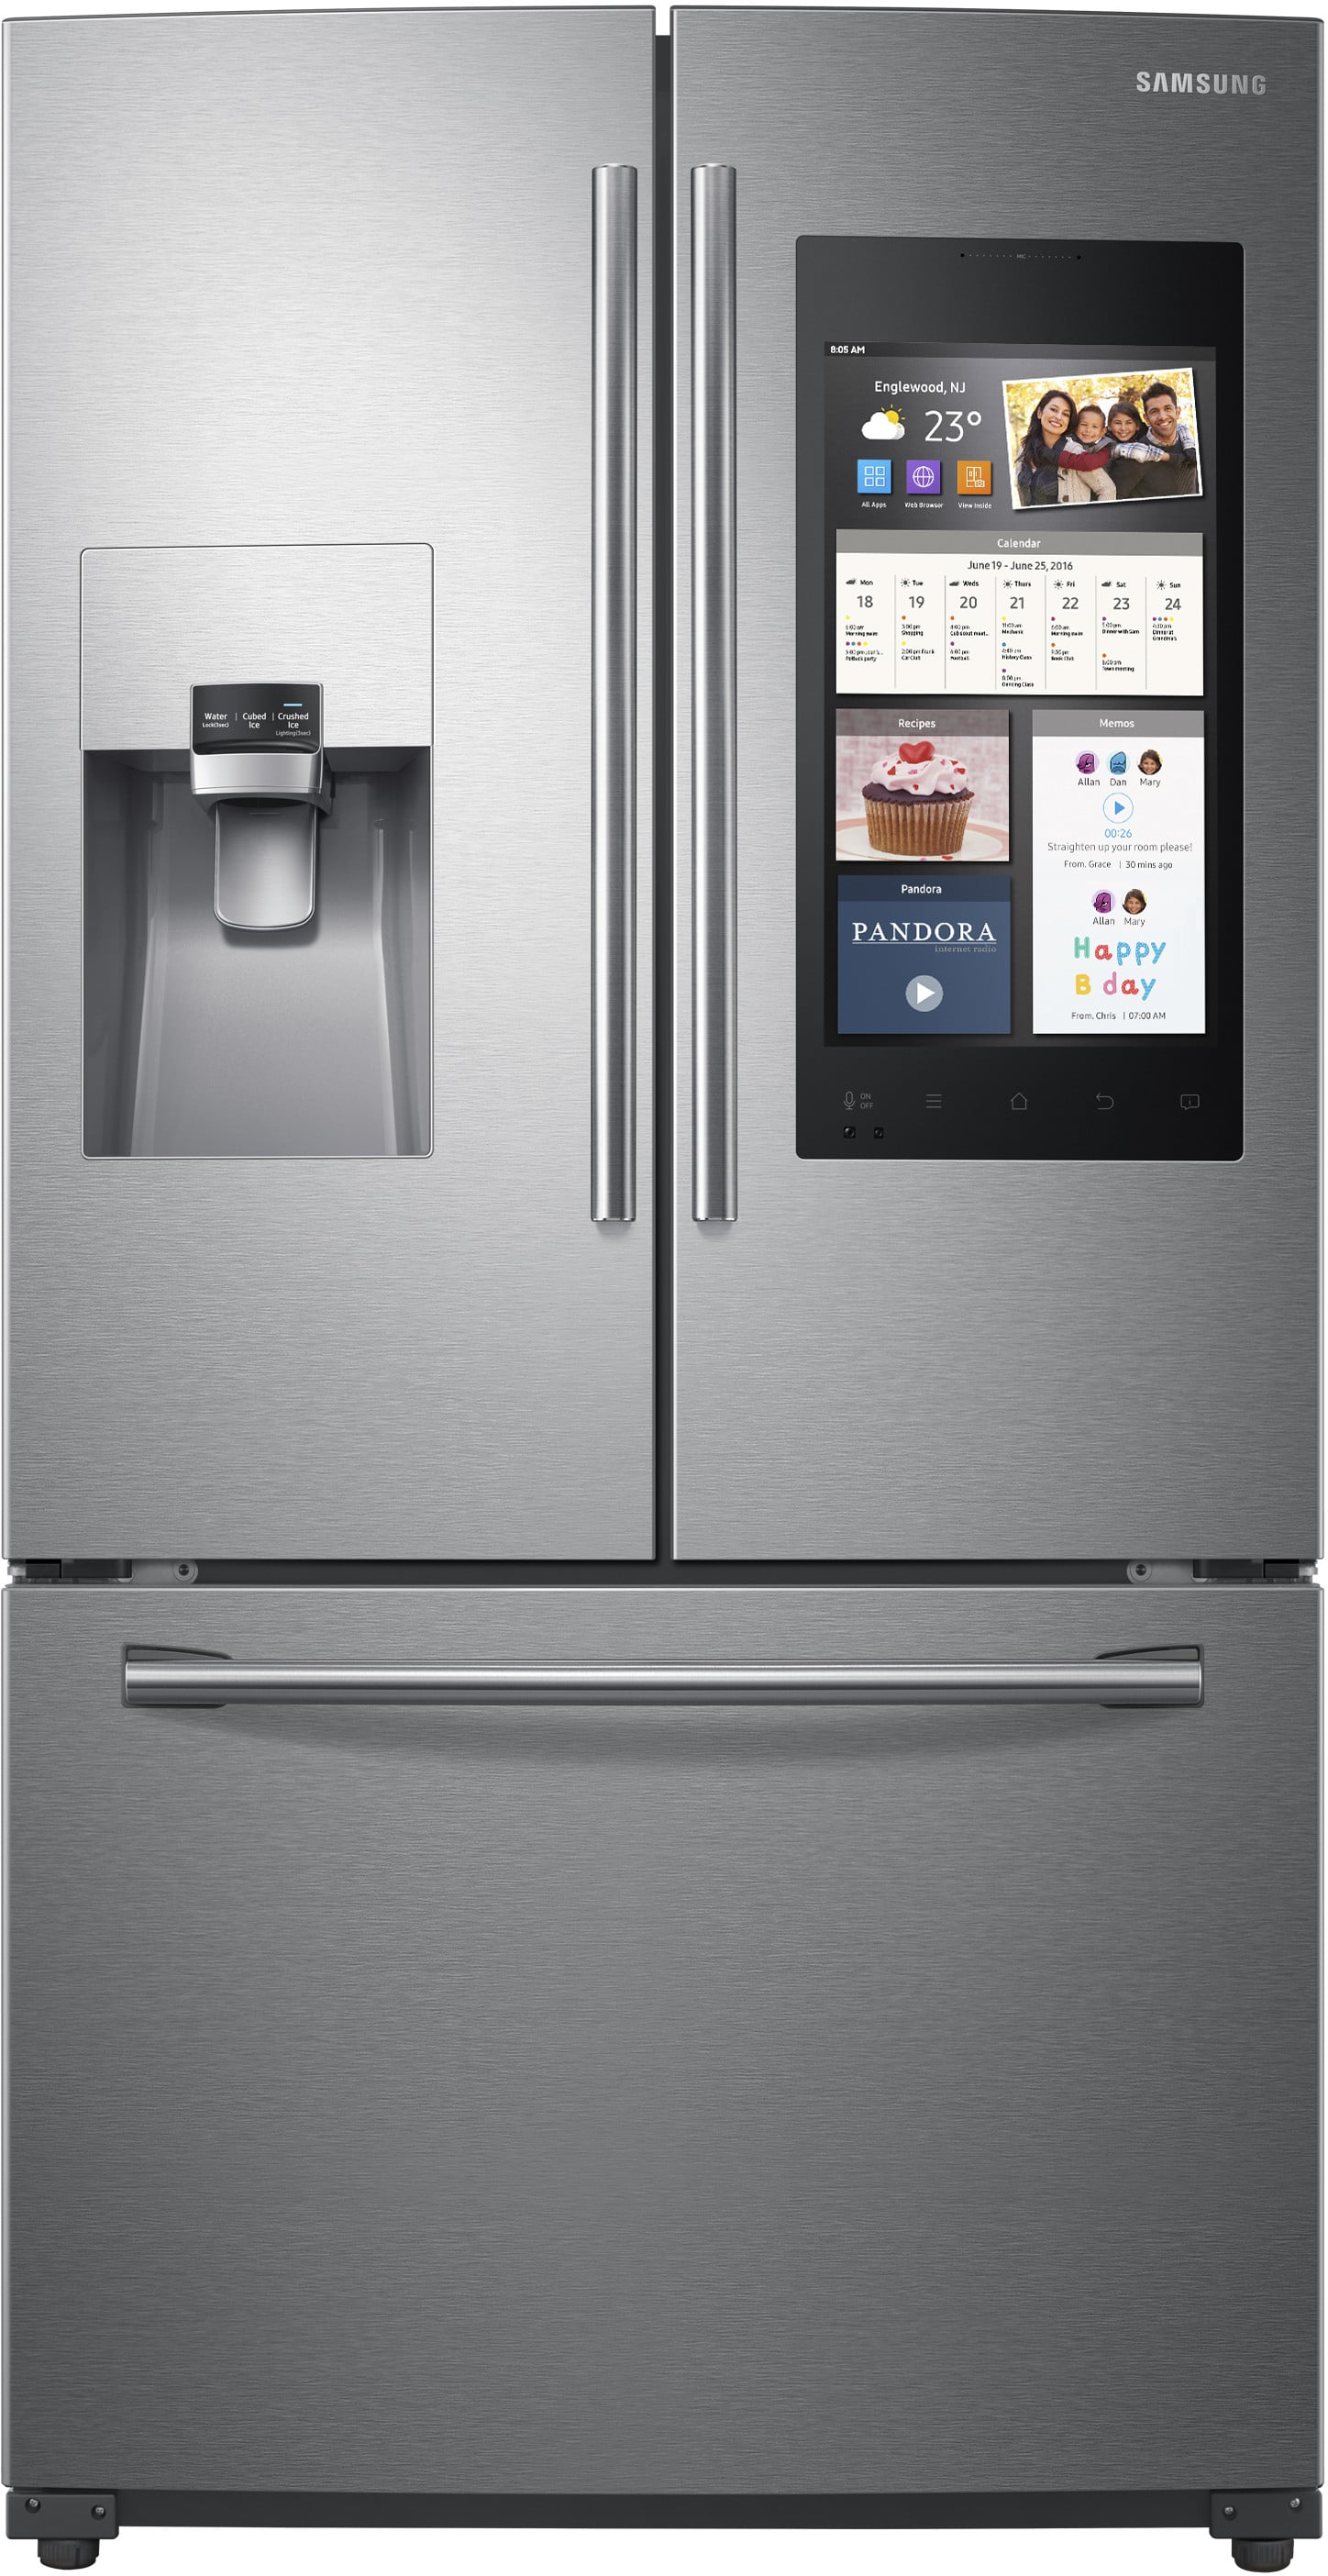 Samsung Rf265beaesr 36 Inch French Door Refrigerator With